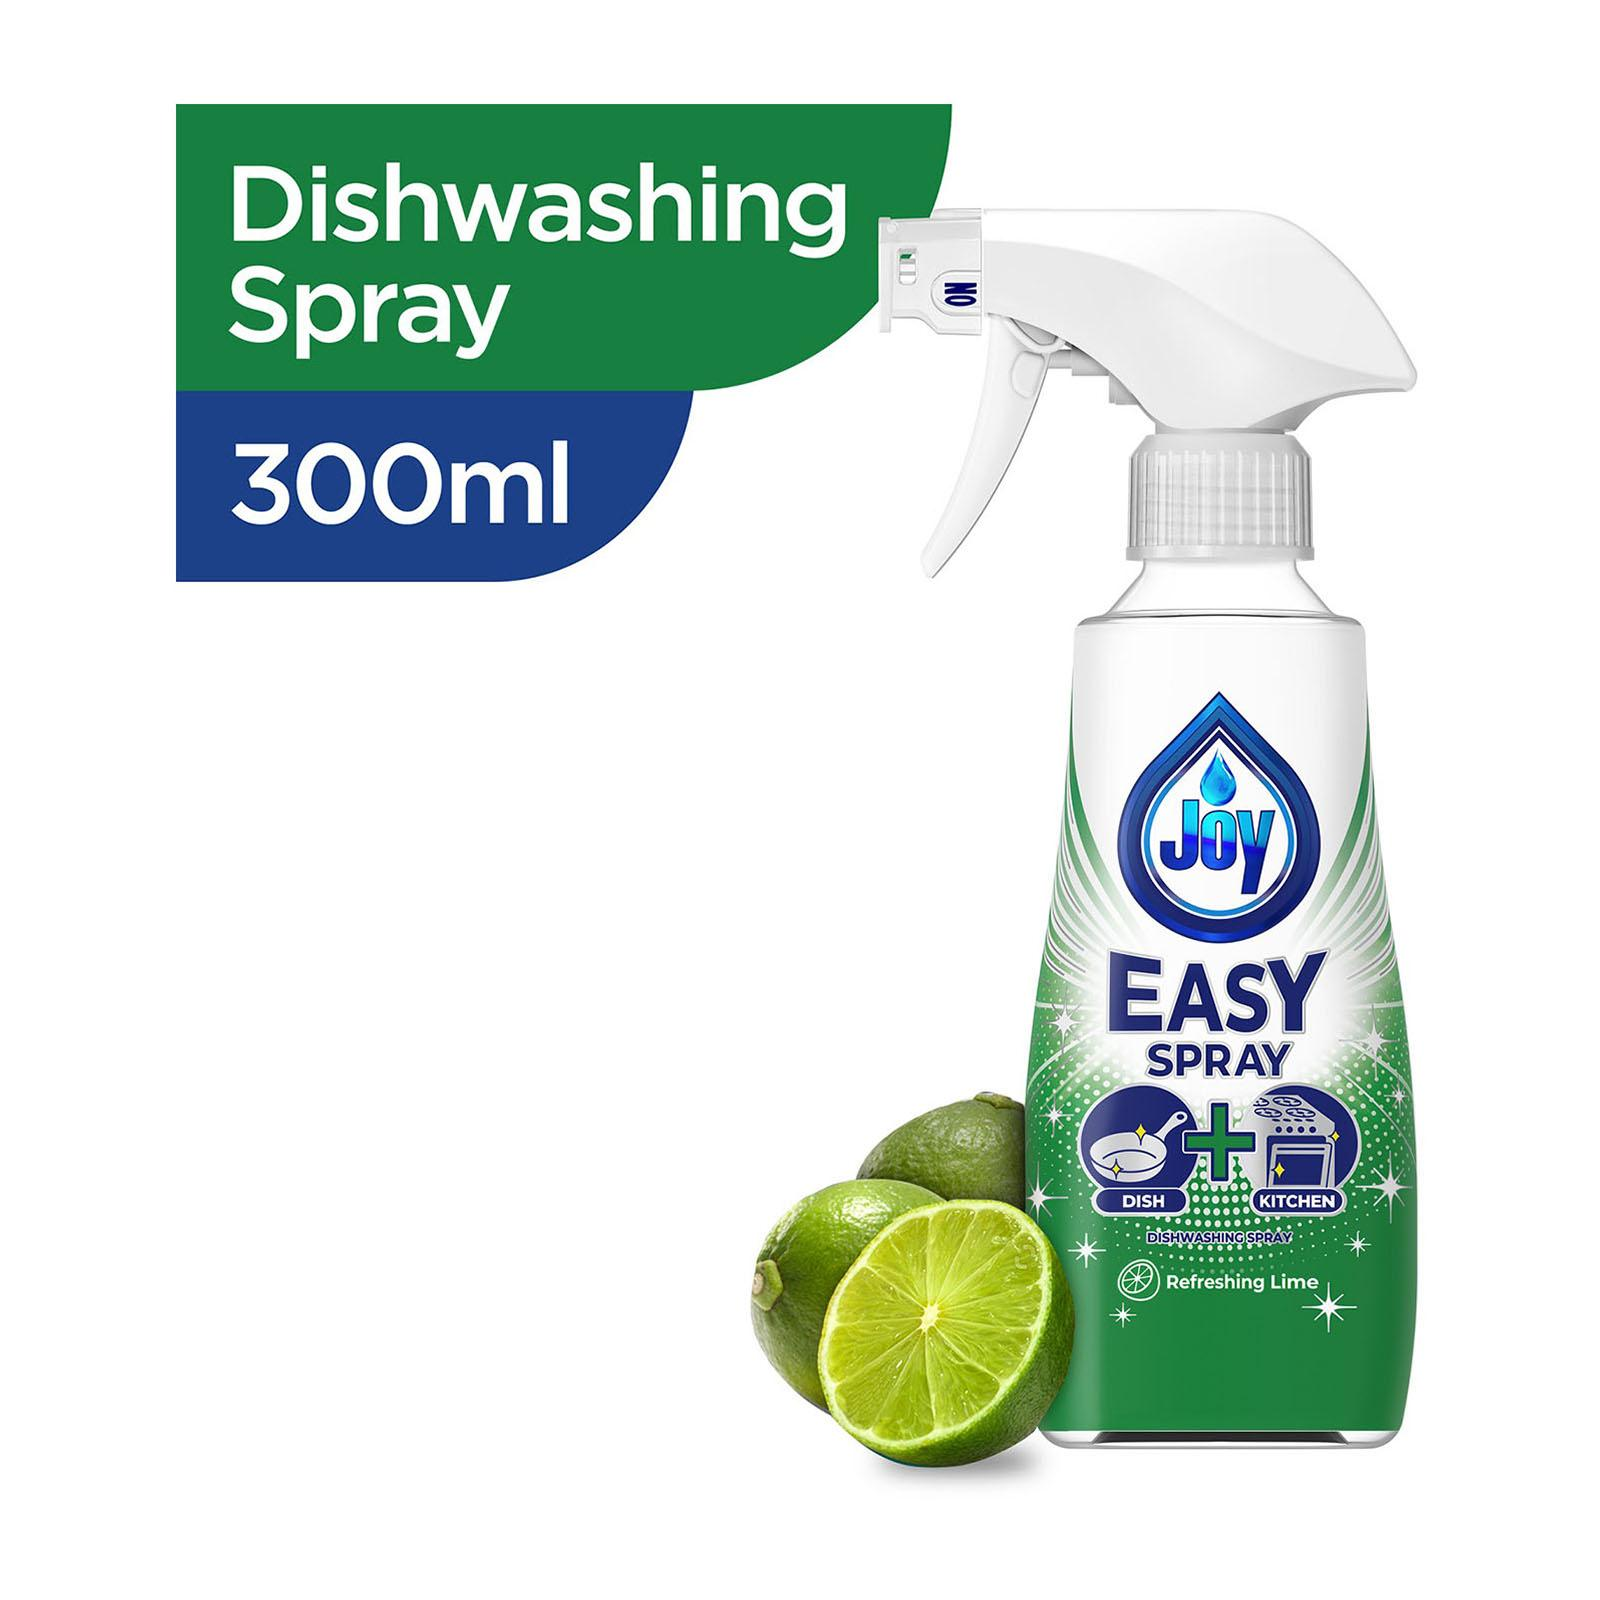 Joy Easy Spray Refreshing Lime Dishwashing Spray 300 ML